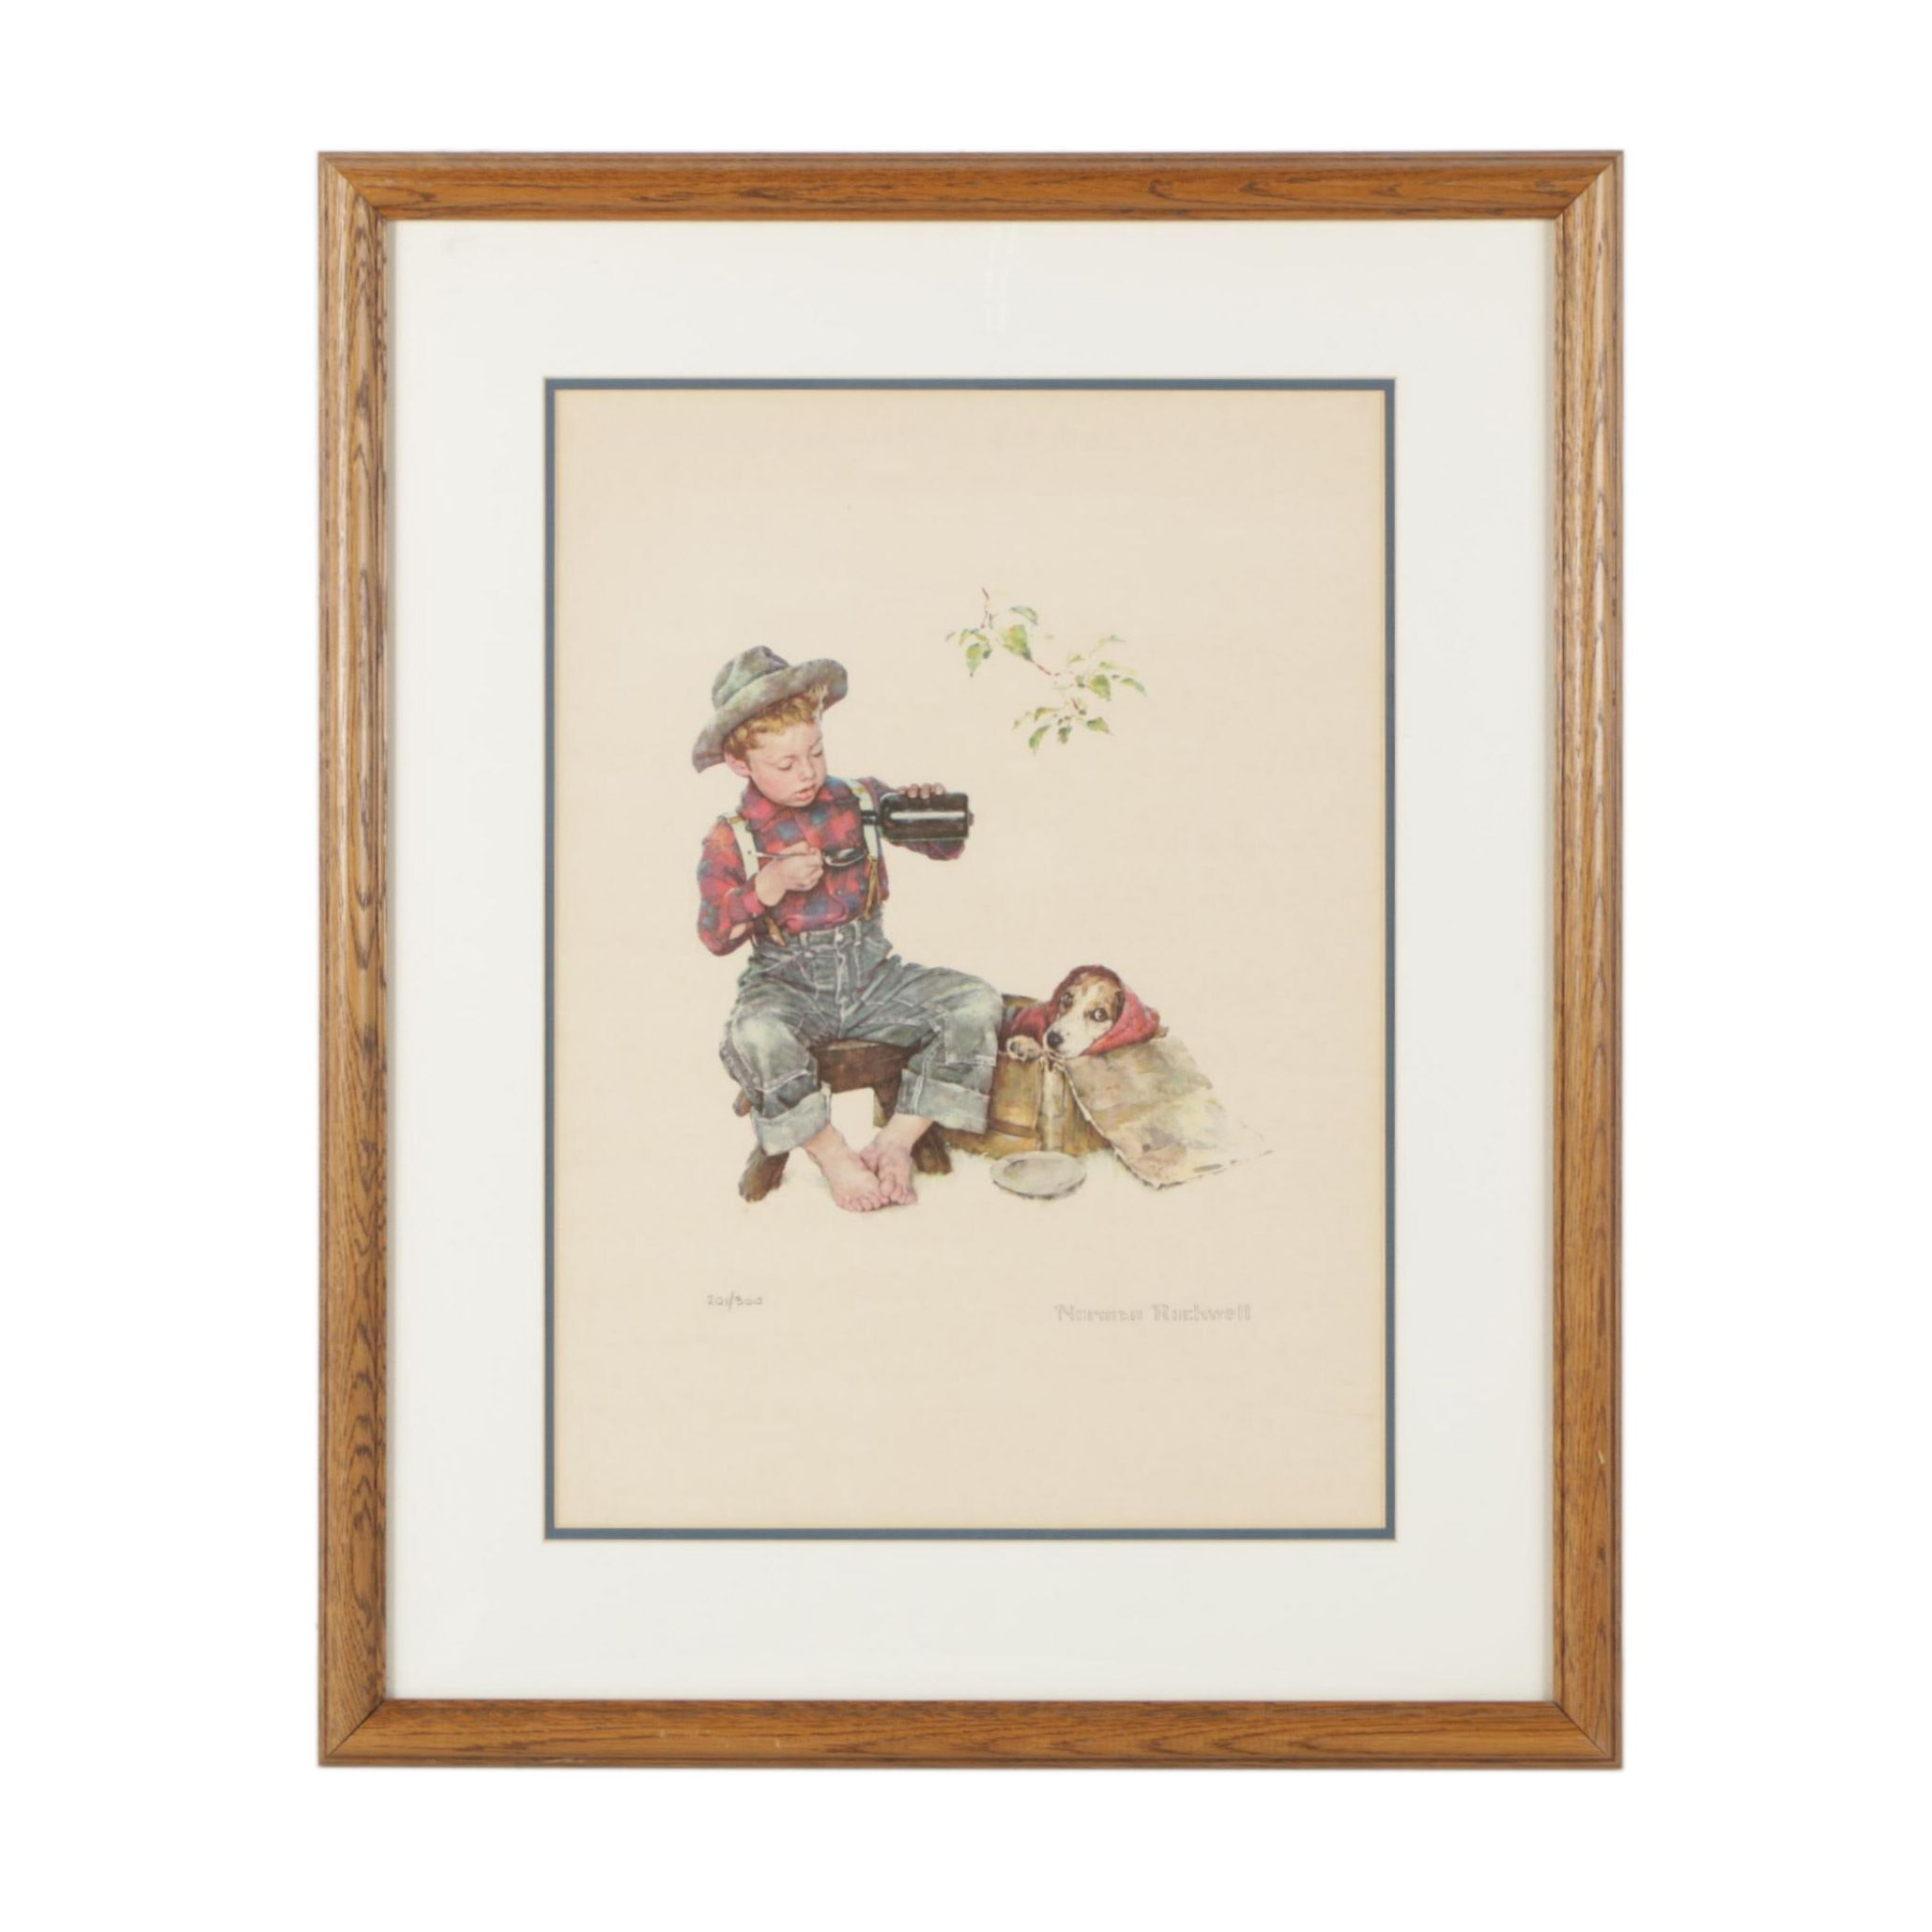 """Limited Edition Offset Lithograph After Norman Rockwell """"Mysterious Malady"""""""